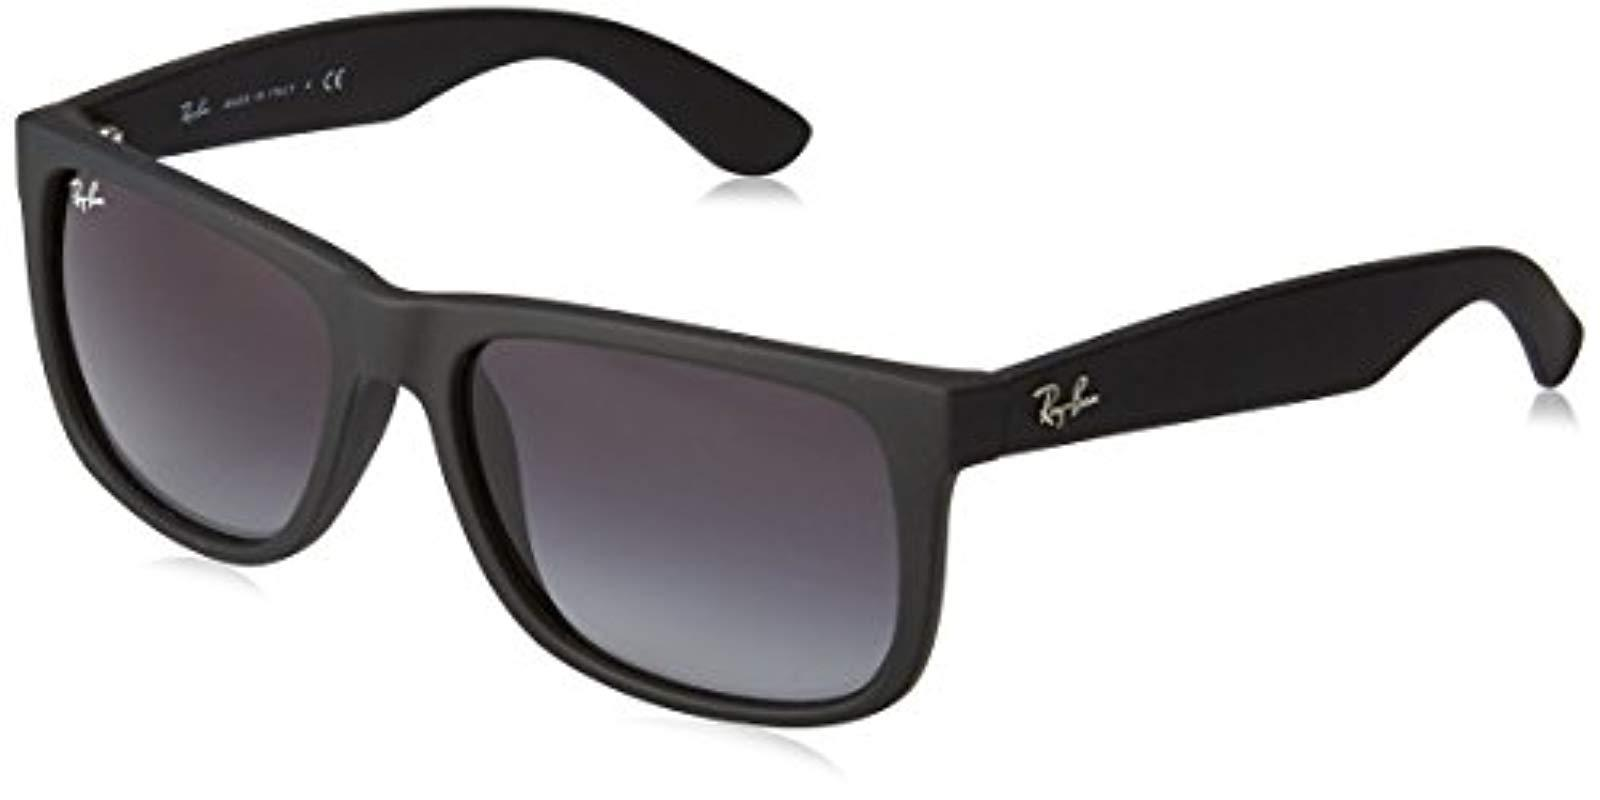 e2f156f394 Ray-Ban Rb4165 Justin Sunglasses 54 Mm in Black for Men - Lyst